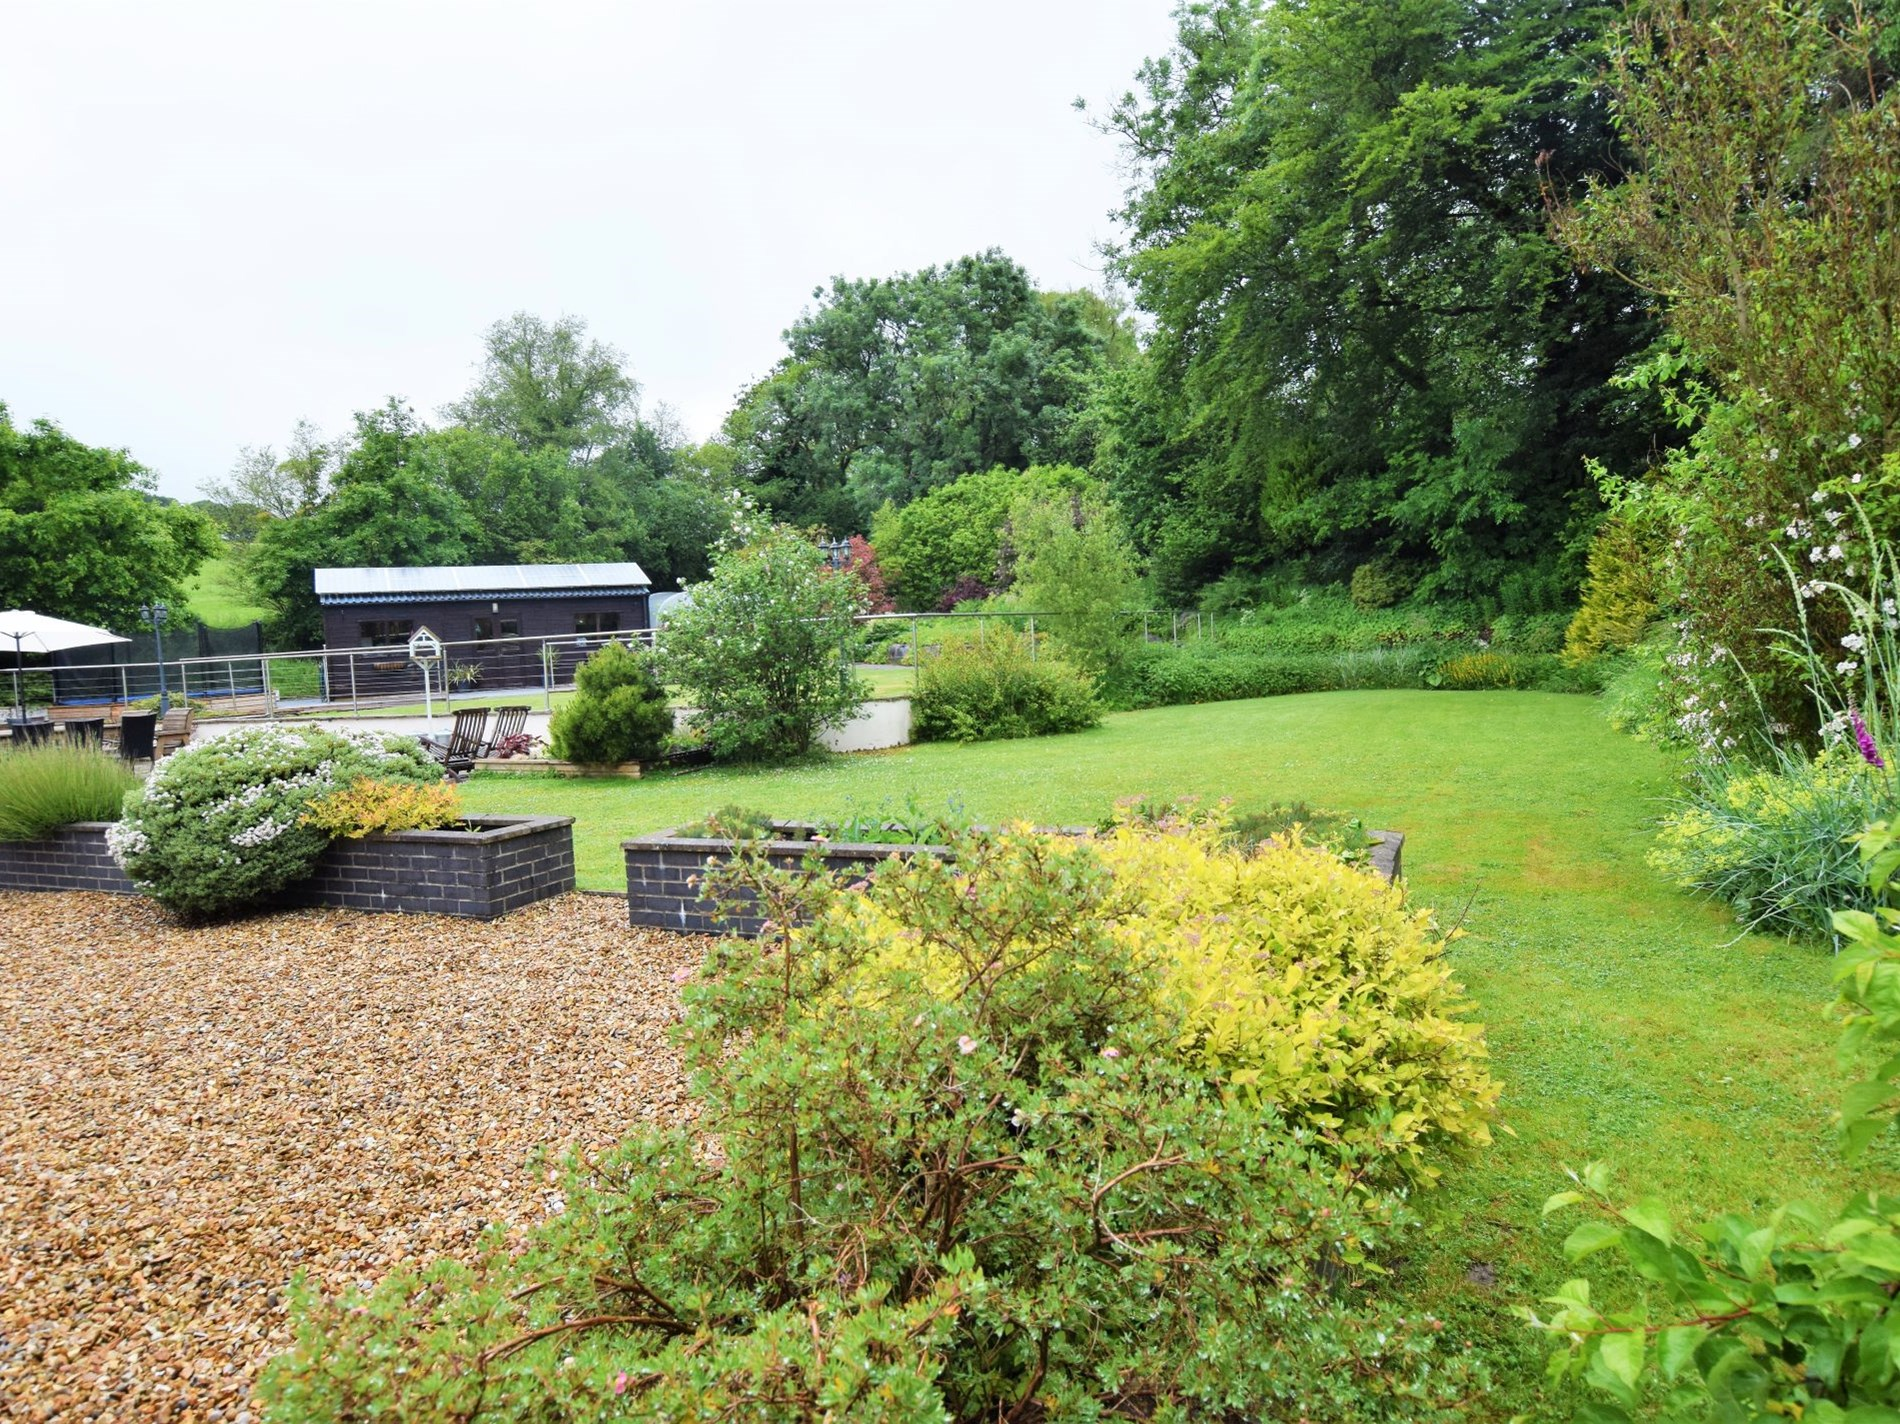 10 Bedroom Bungalow in West Wales, Pembrokeshire and the South